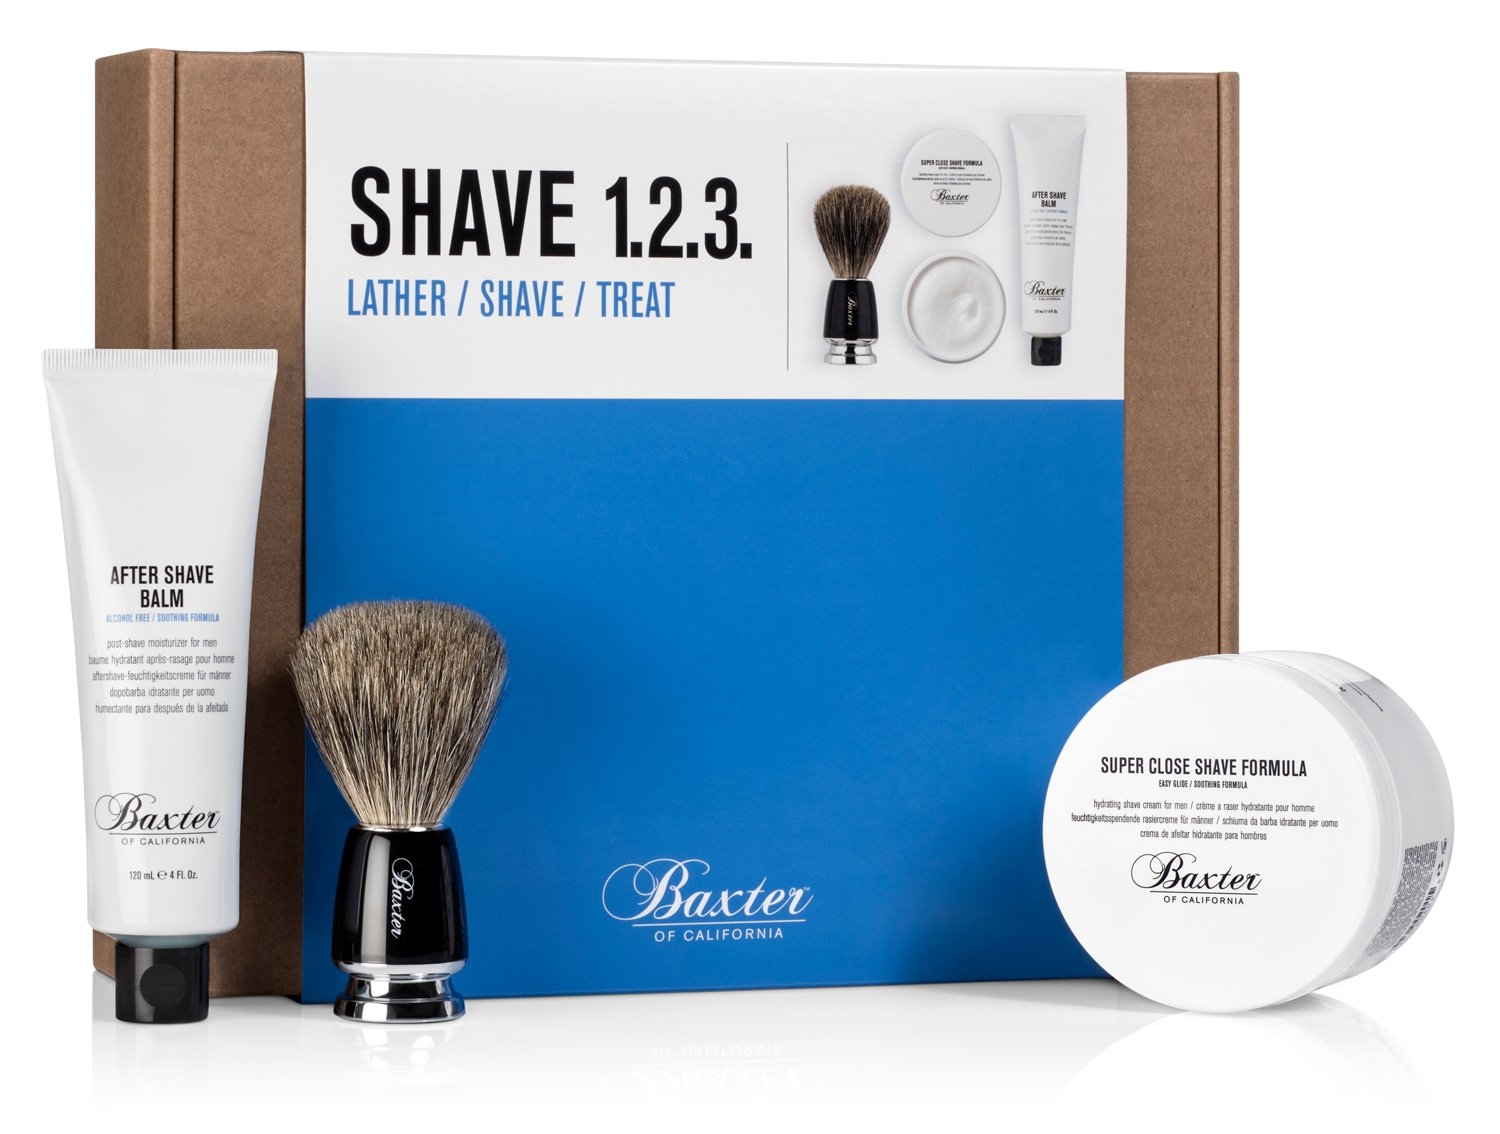 Baxter of California Shave 123 Set, 3 lb. by Baxter of California